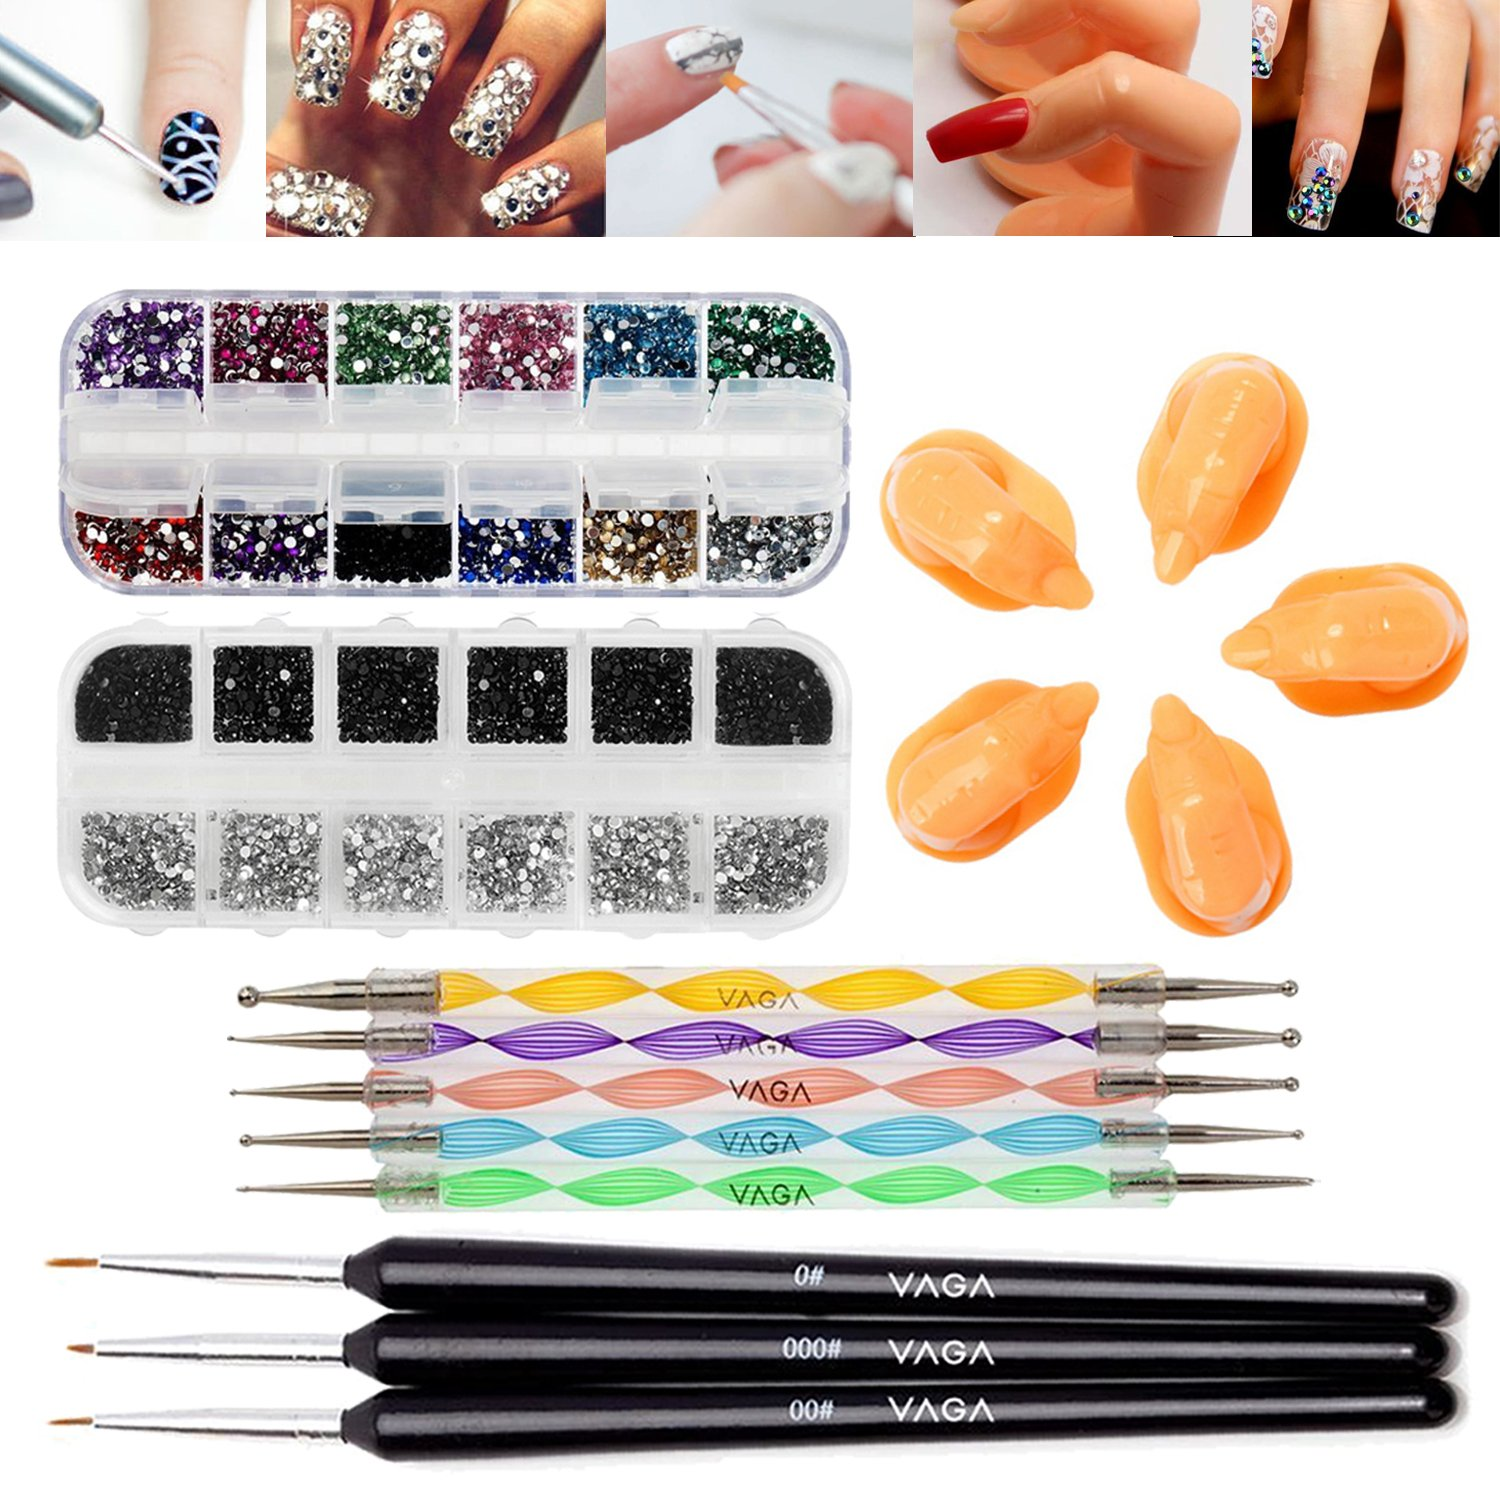 Fabulous Deal Professional Nail Art Accessories Practice Set With 5 Best Quality Acrylic Dummy Fingers, Fine Wooden Nails Brushes / Stripers / Liners And Boxes of 5000 Colourful, Silver, Black Rhinestones / Crystals / Gemstones And Dotting Tools / Dotters